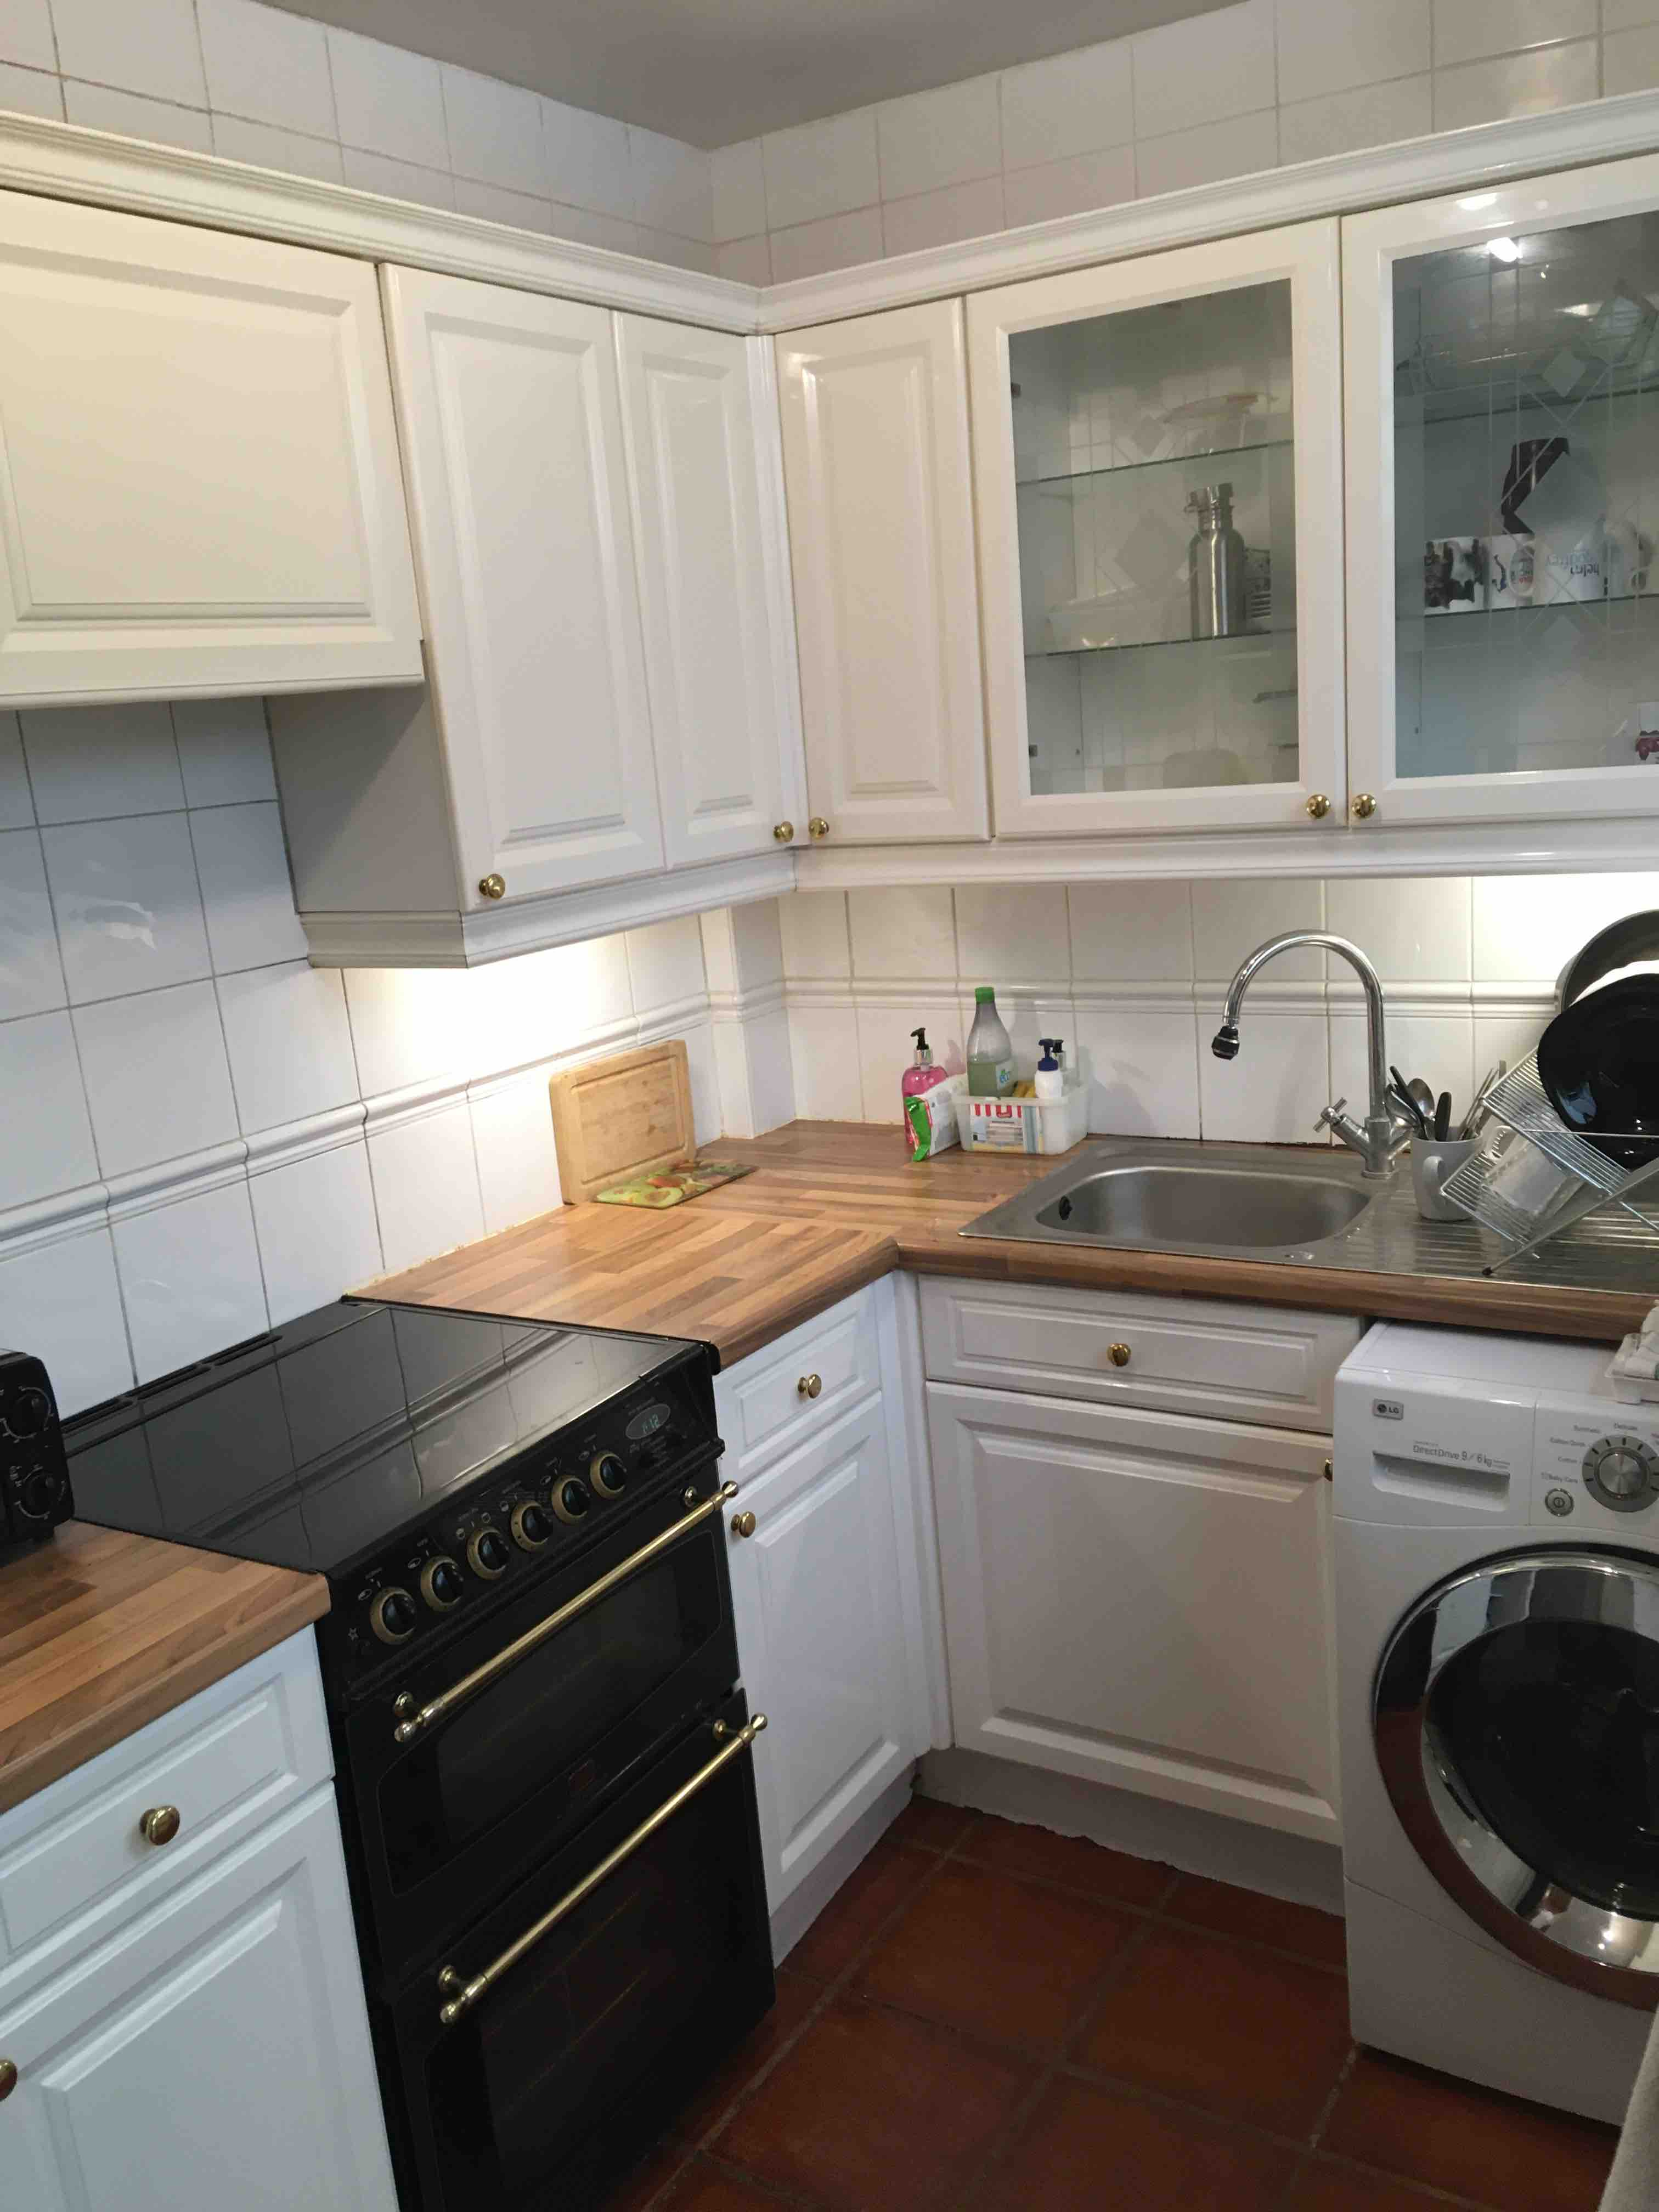 1 room in Becontree, Dagenham, RM8 2XT RoomsLocal image